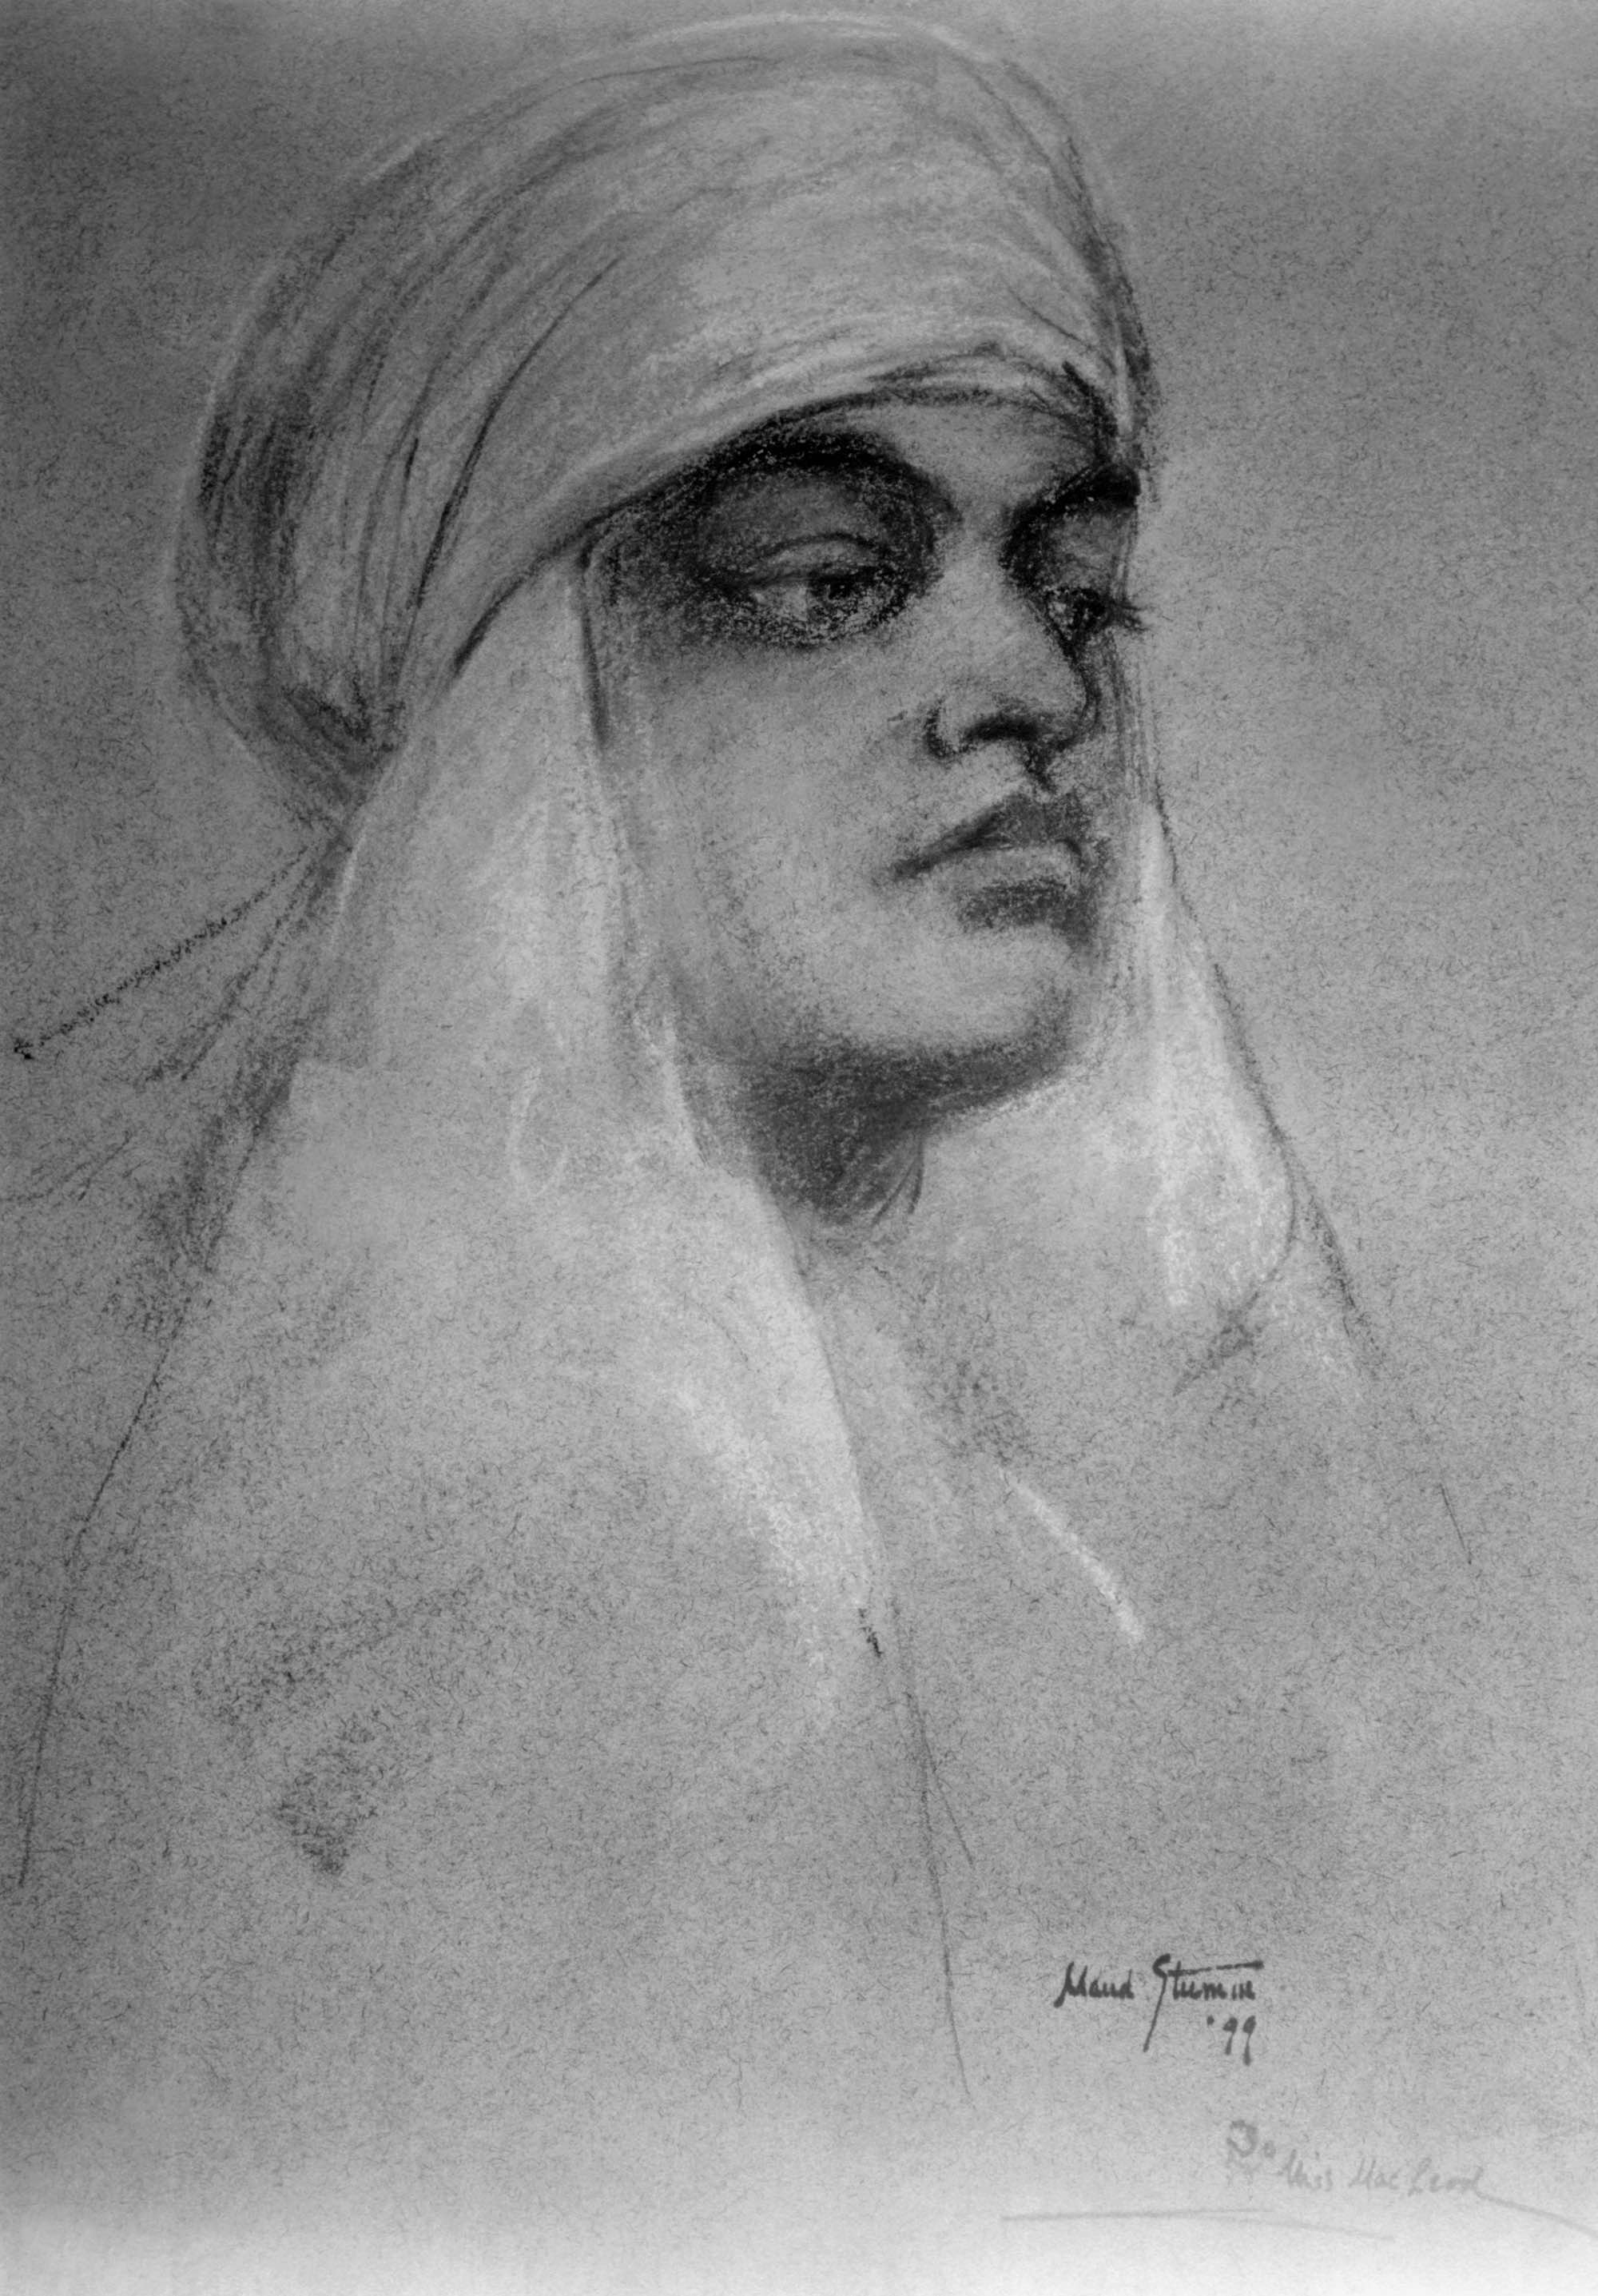 (#79) Ridgely Manor, New York. September 1899. This is a pastel drawing of Swamiji  au Bedouin  by a young artist, Maud Stumm, who was one of the house guests at Ridgely. Swamiji took a few drawing lessons from her and later drew a portrait of Swami Turiyananda. Alas, we don't have a copy of it.